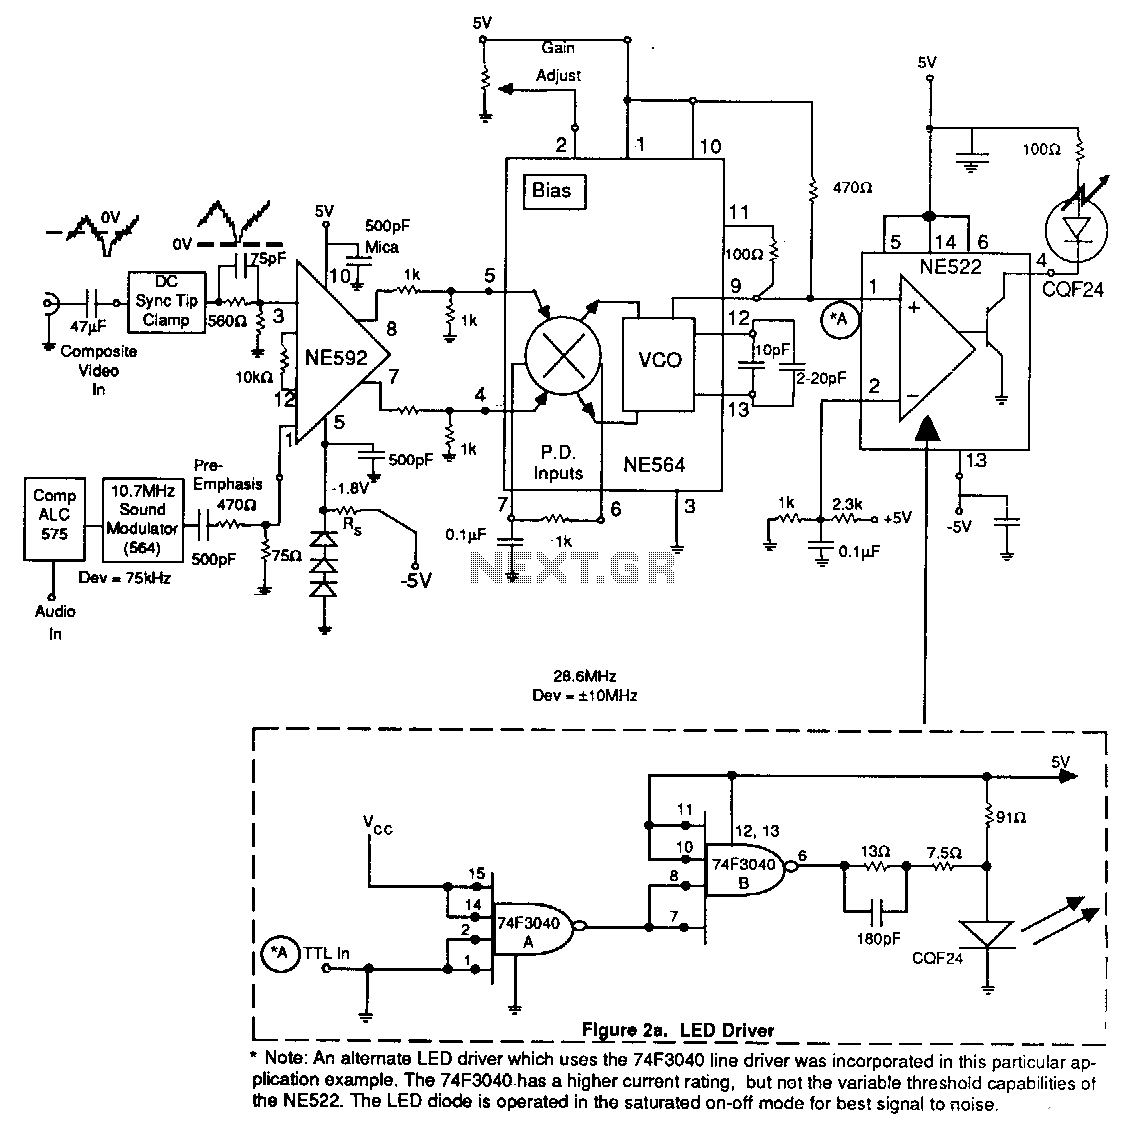 Fiber-optic-transmitter - schematic